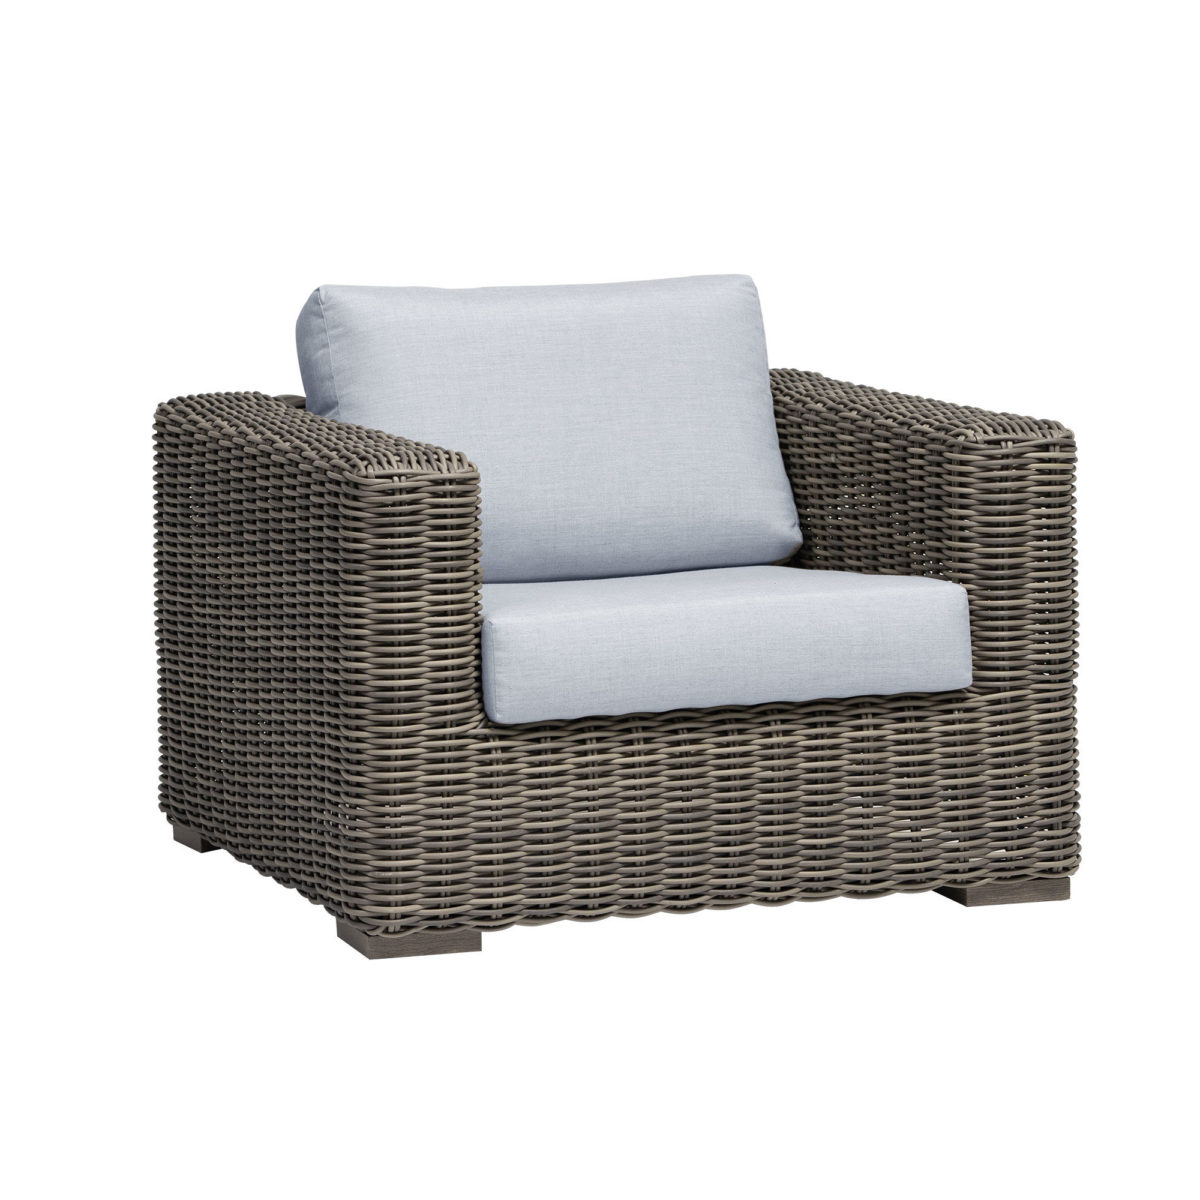 The Cubo club chair Ratana in cream oak wicker with grey cushions.